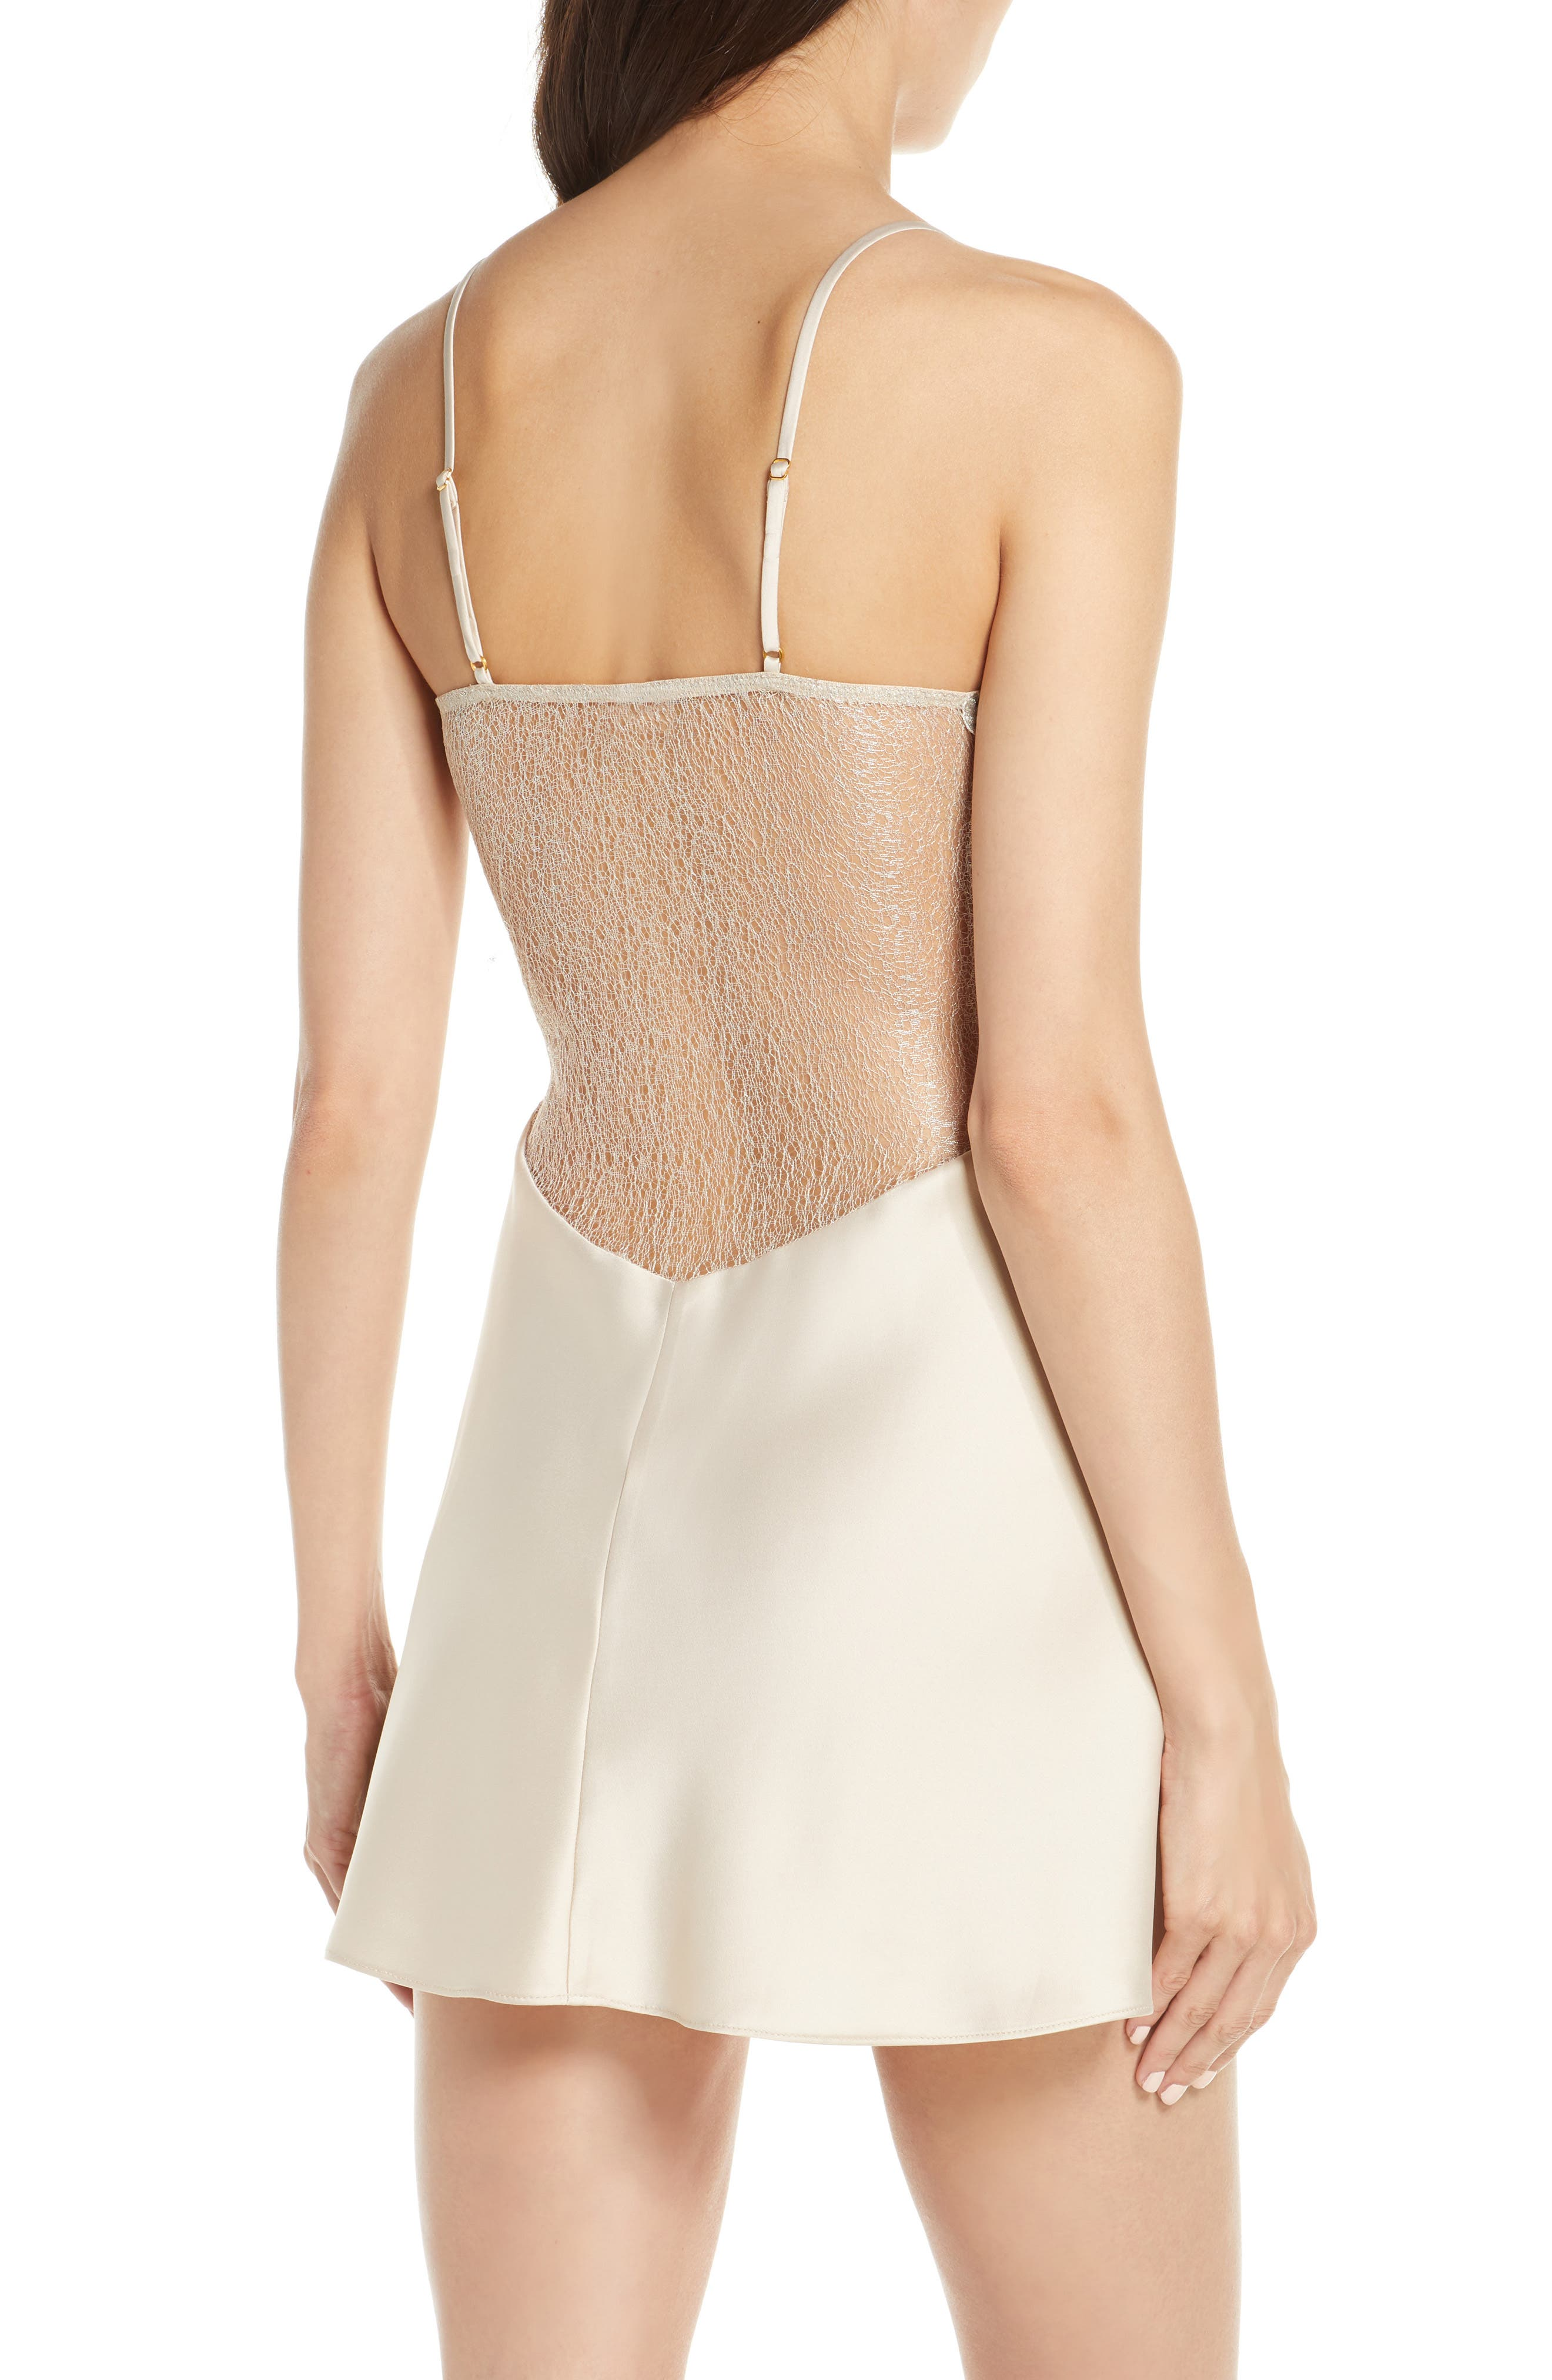 FLORA NIKROOZ, Showstopper Chemise, Alternate thumbnail 2, color, CHAMPAGNE